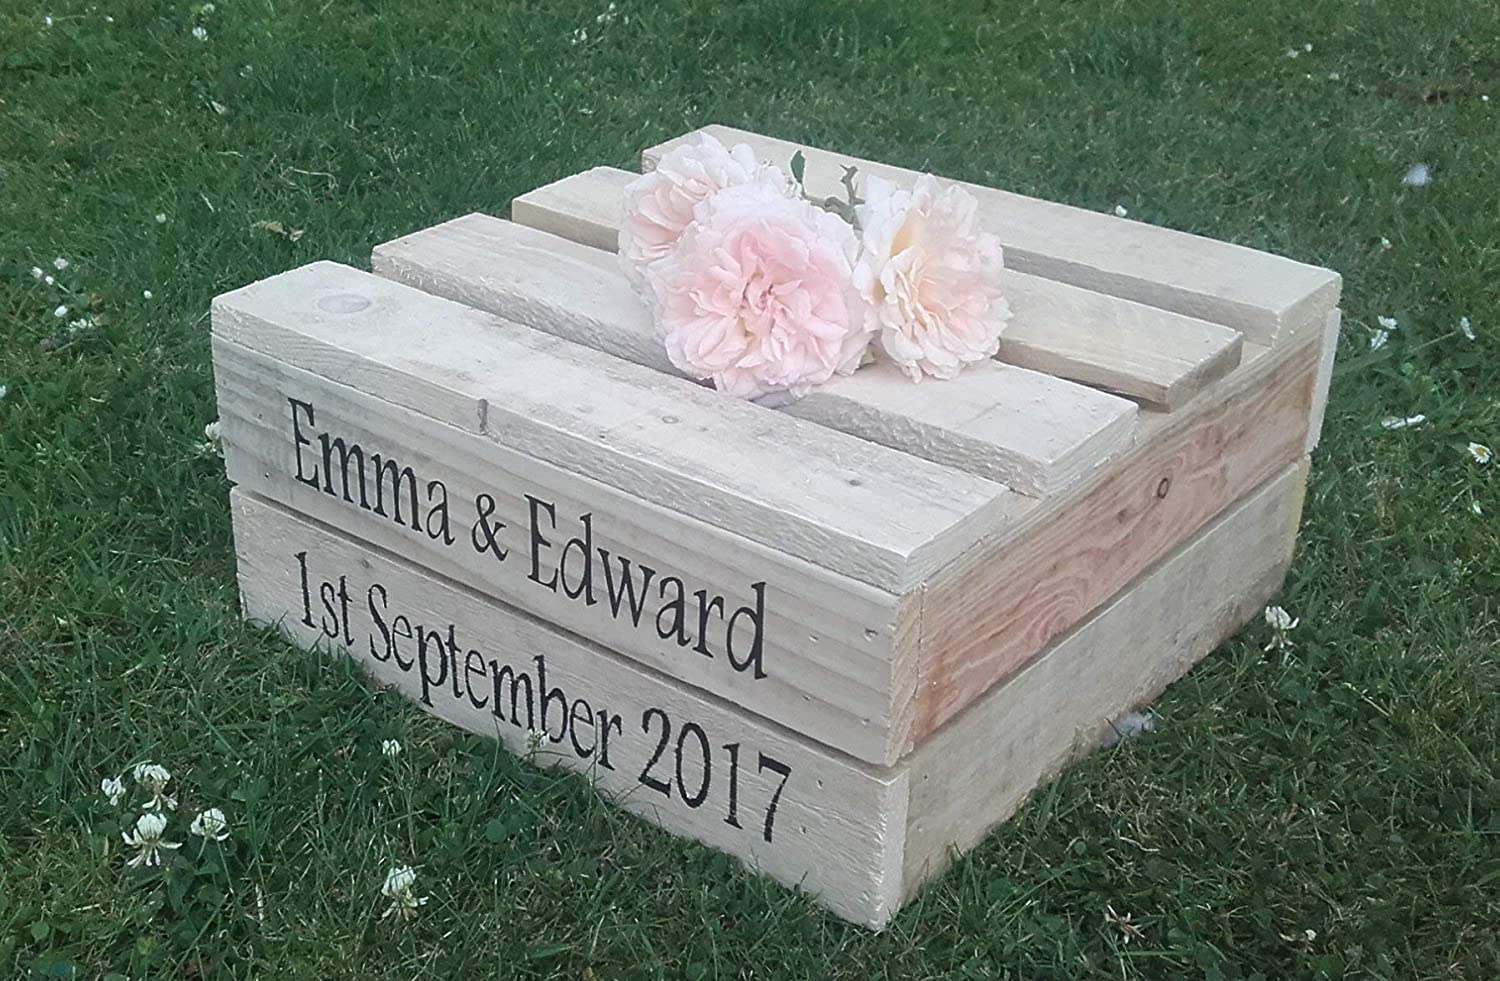 14' Square Wooden Rustic Wedding Cake Stand - Personalised - 1 or 2 tier